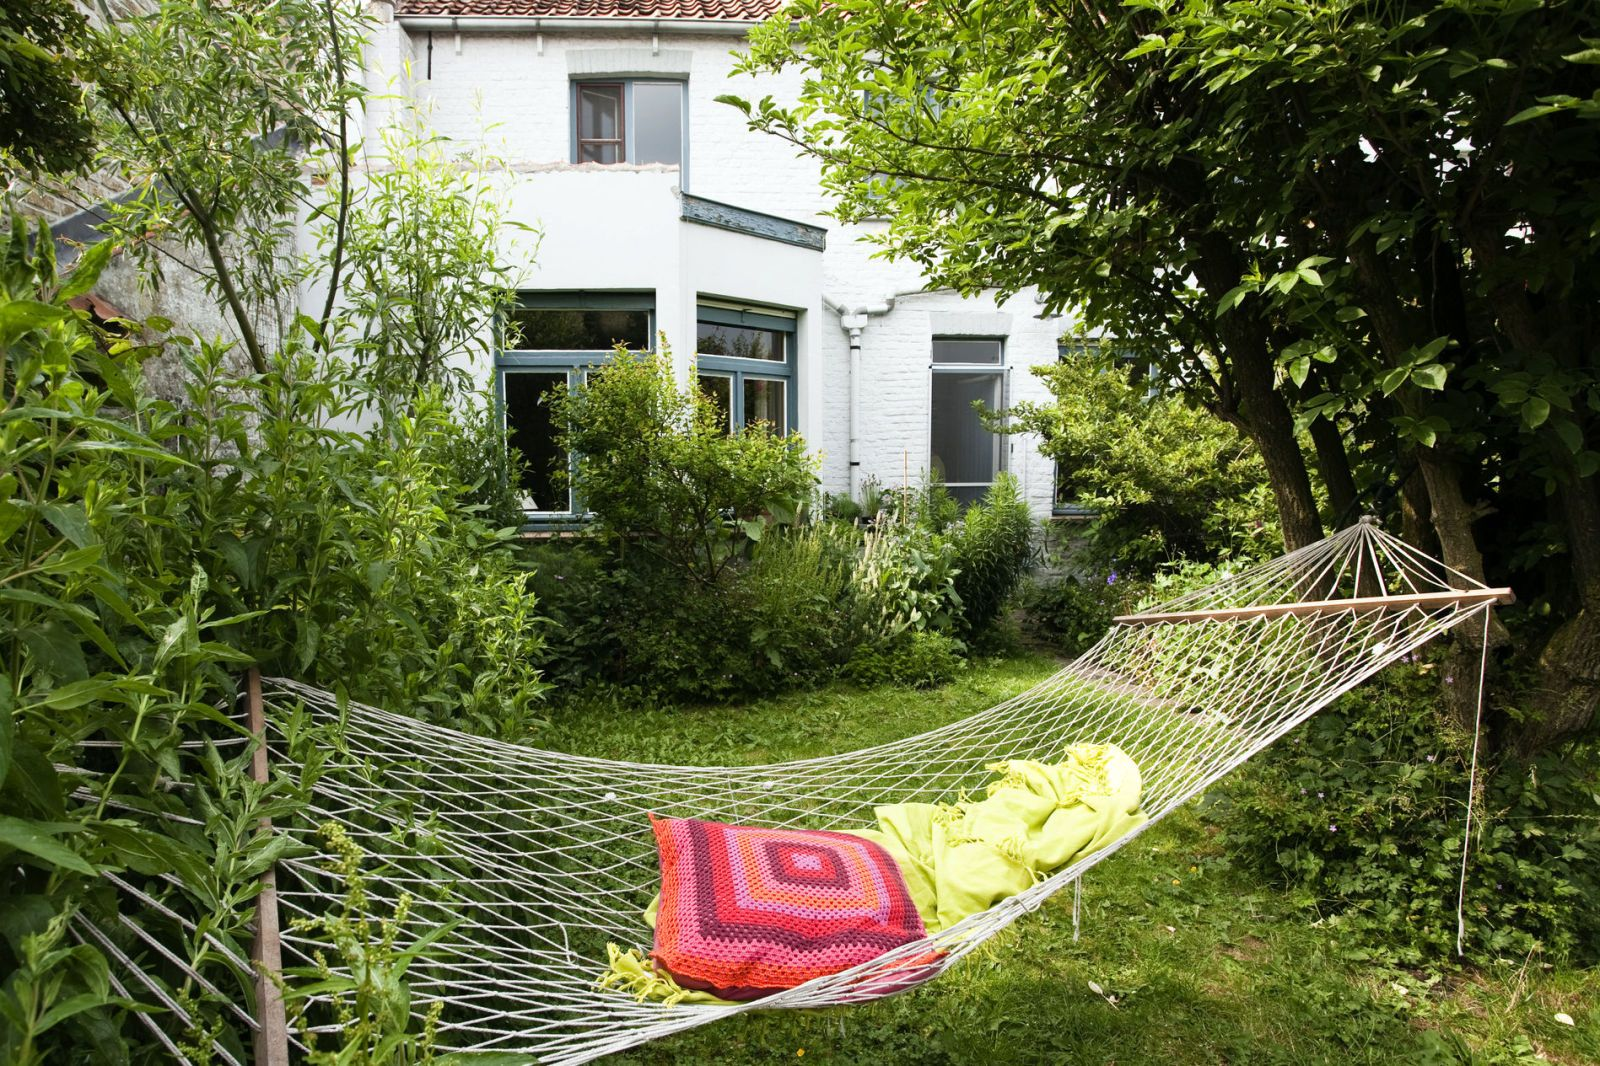 Small Suburban Garden With Hammock And Informal Planting, June